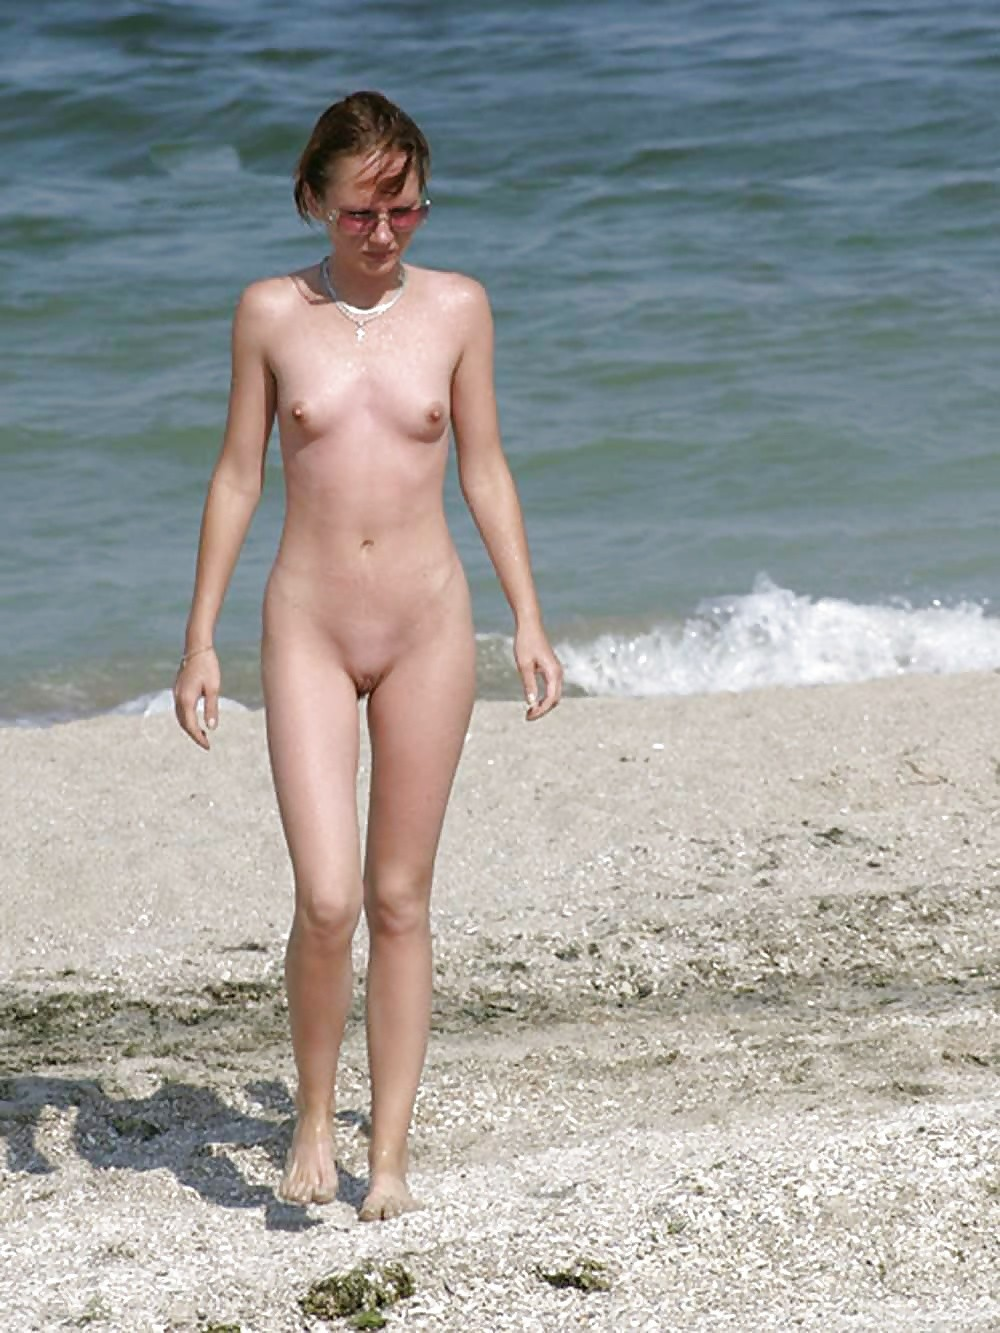 Nudist 23 beach amateurs free